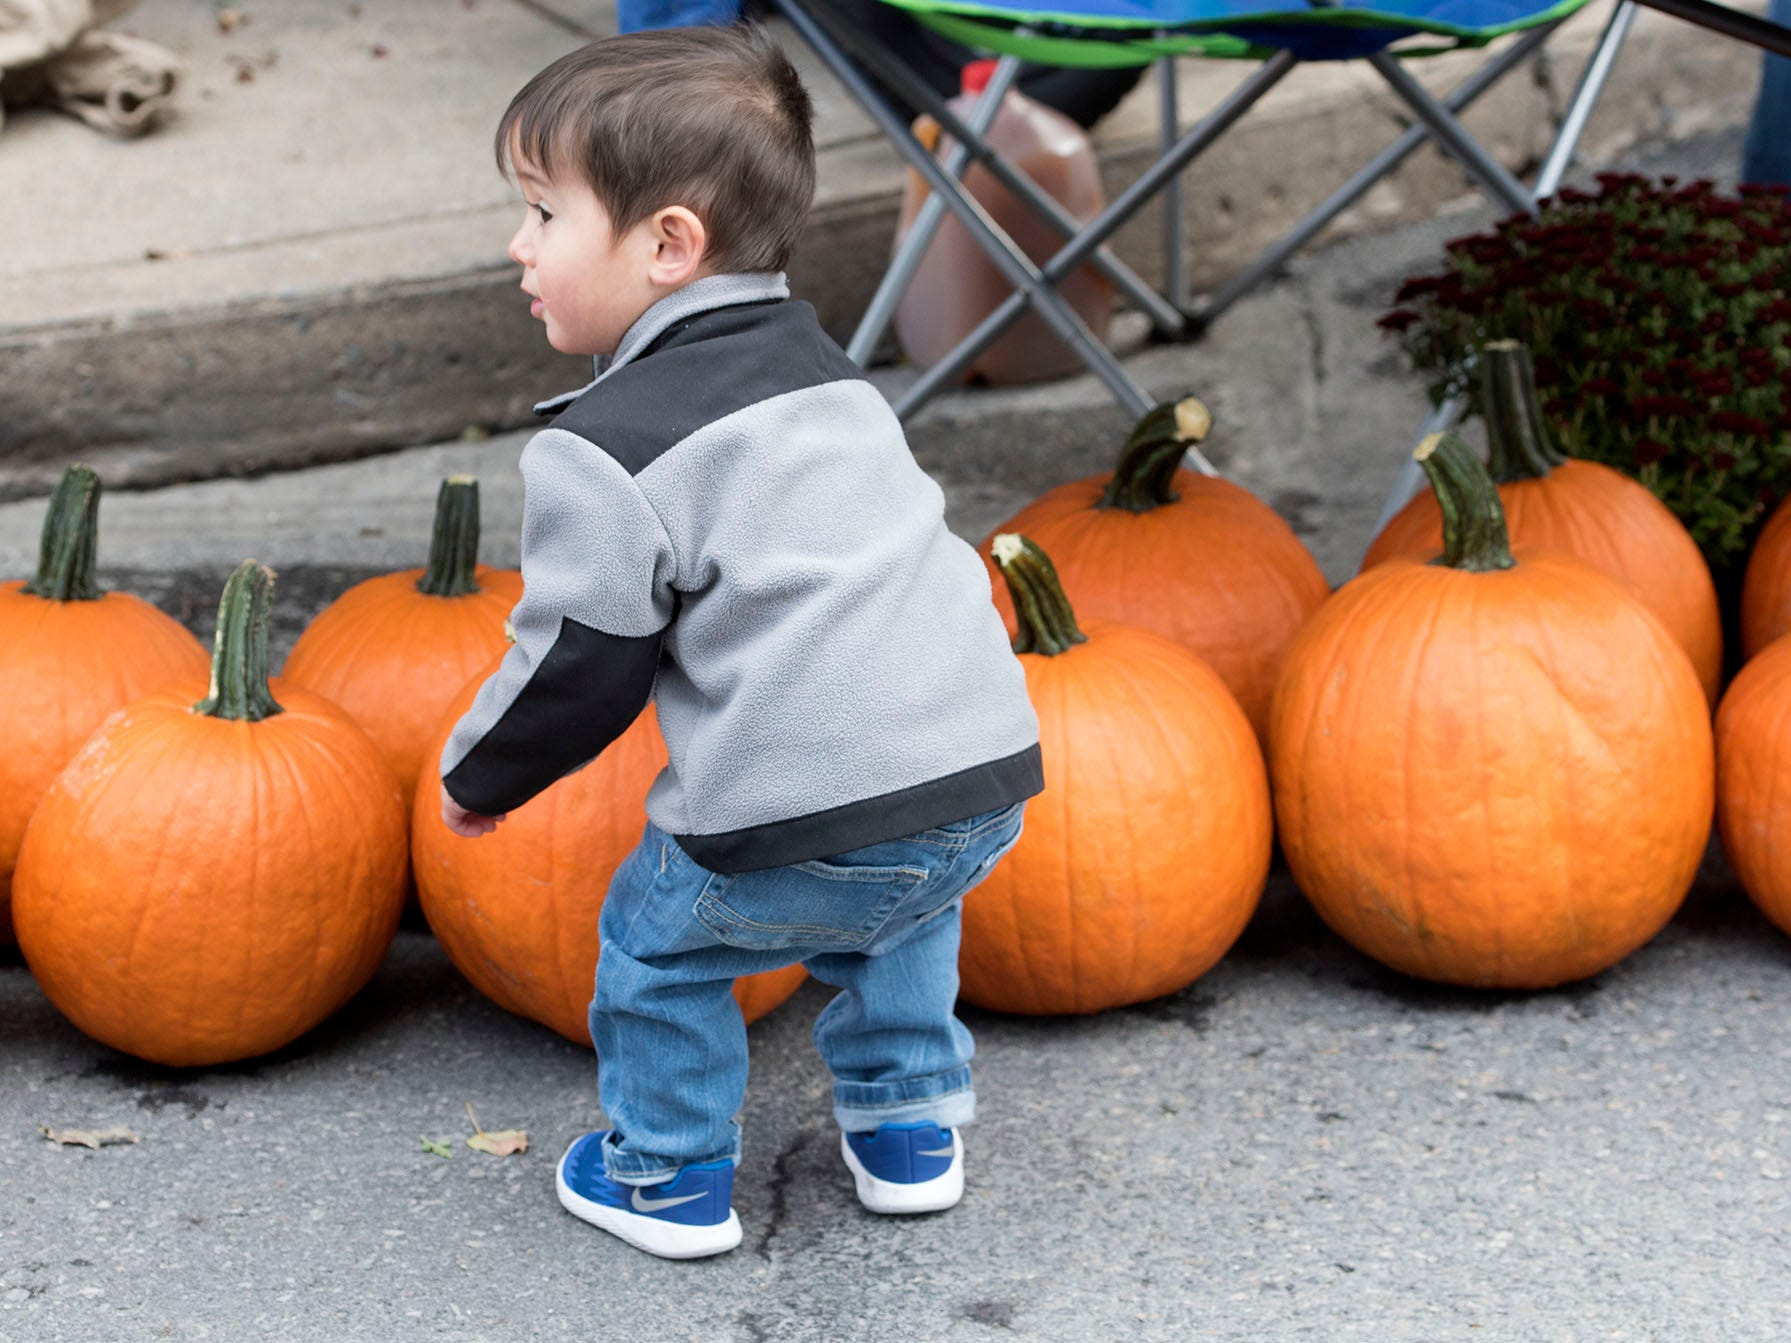 Alexander Carll, 2, enjoys the pumpkins. Applefest started Saturday morning October 20, 2018 in downtown Chambersburg.